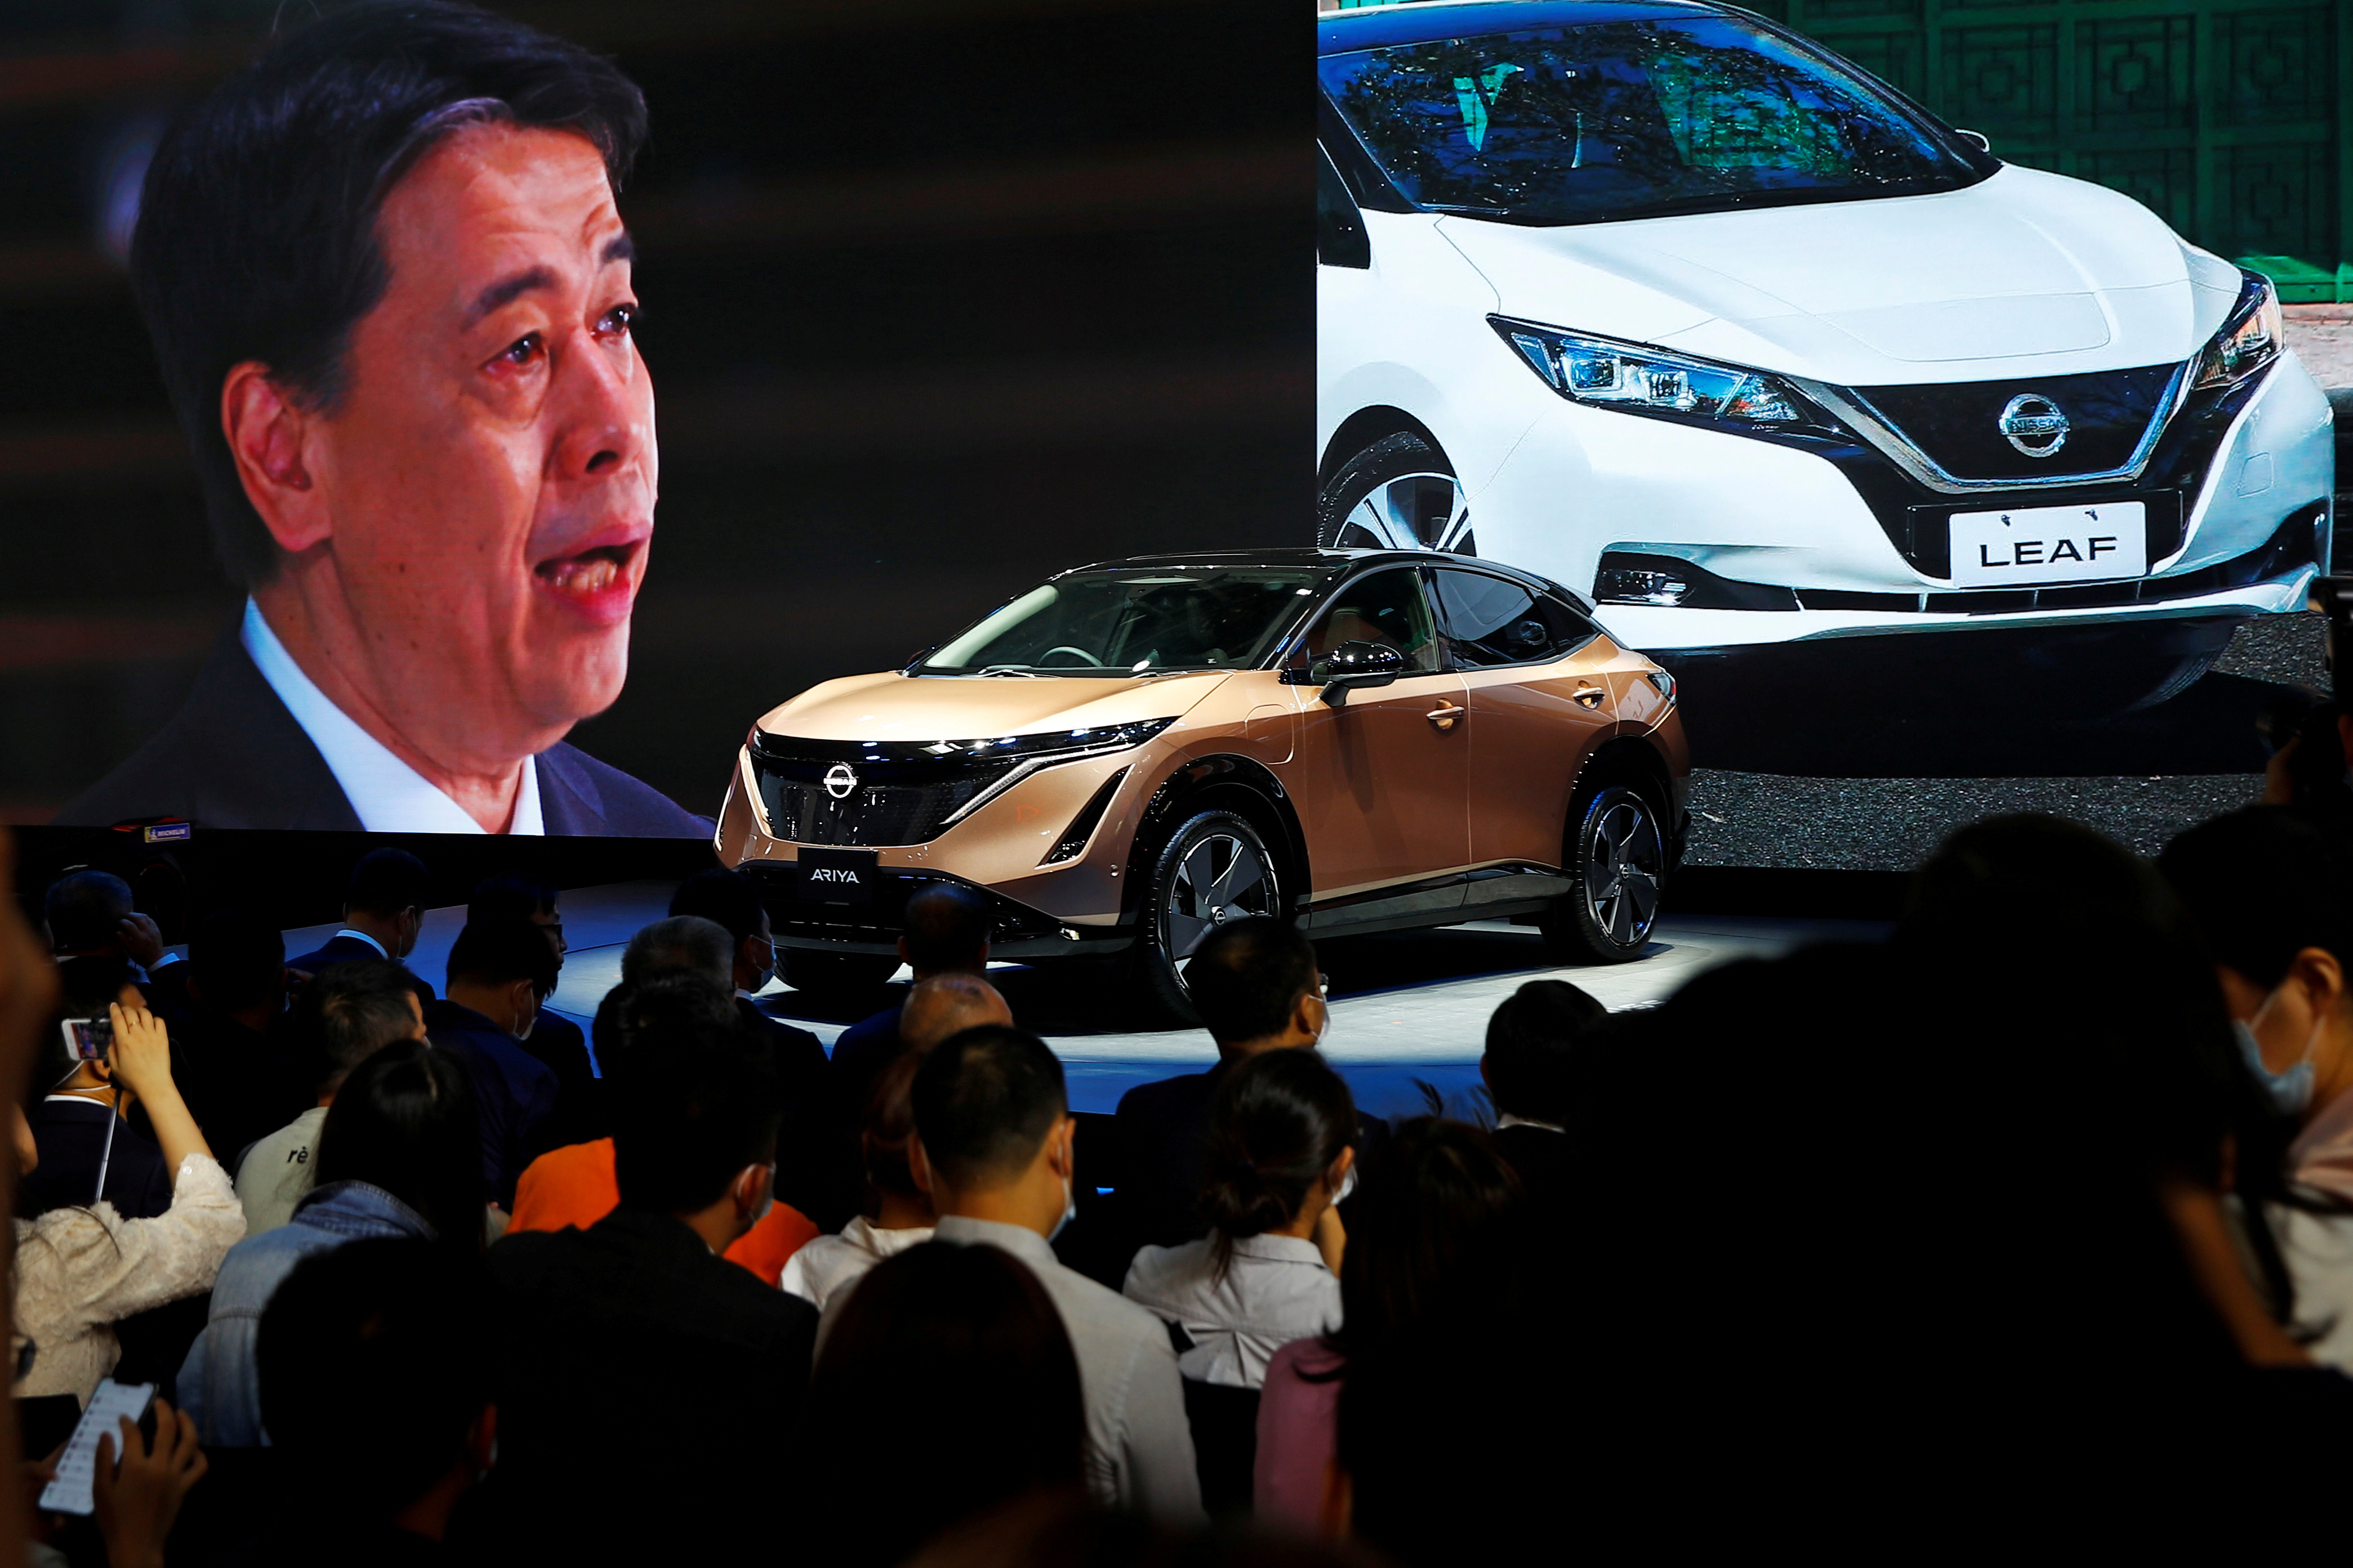 Nissan Chief Executive Officer Makoto Uchida speaks at Nissan booth via video link during the presentation of Nissan's Ariya model during the Beijing International Automotive Exhibition, or Auto China show, in Beijing, China September 26, 2020. REUTERS/Thomas Peter/File Photo